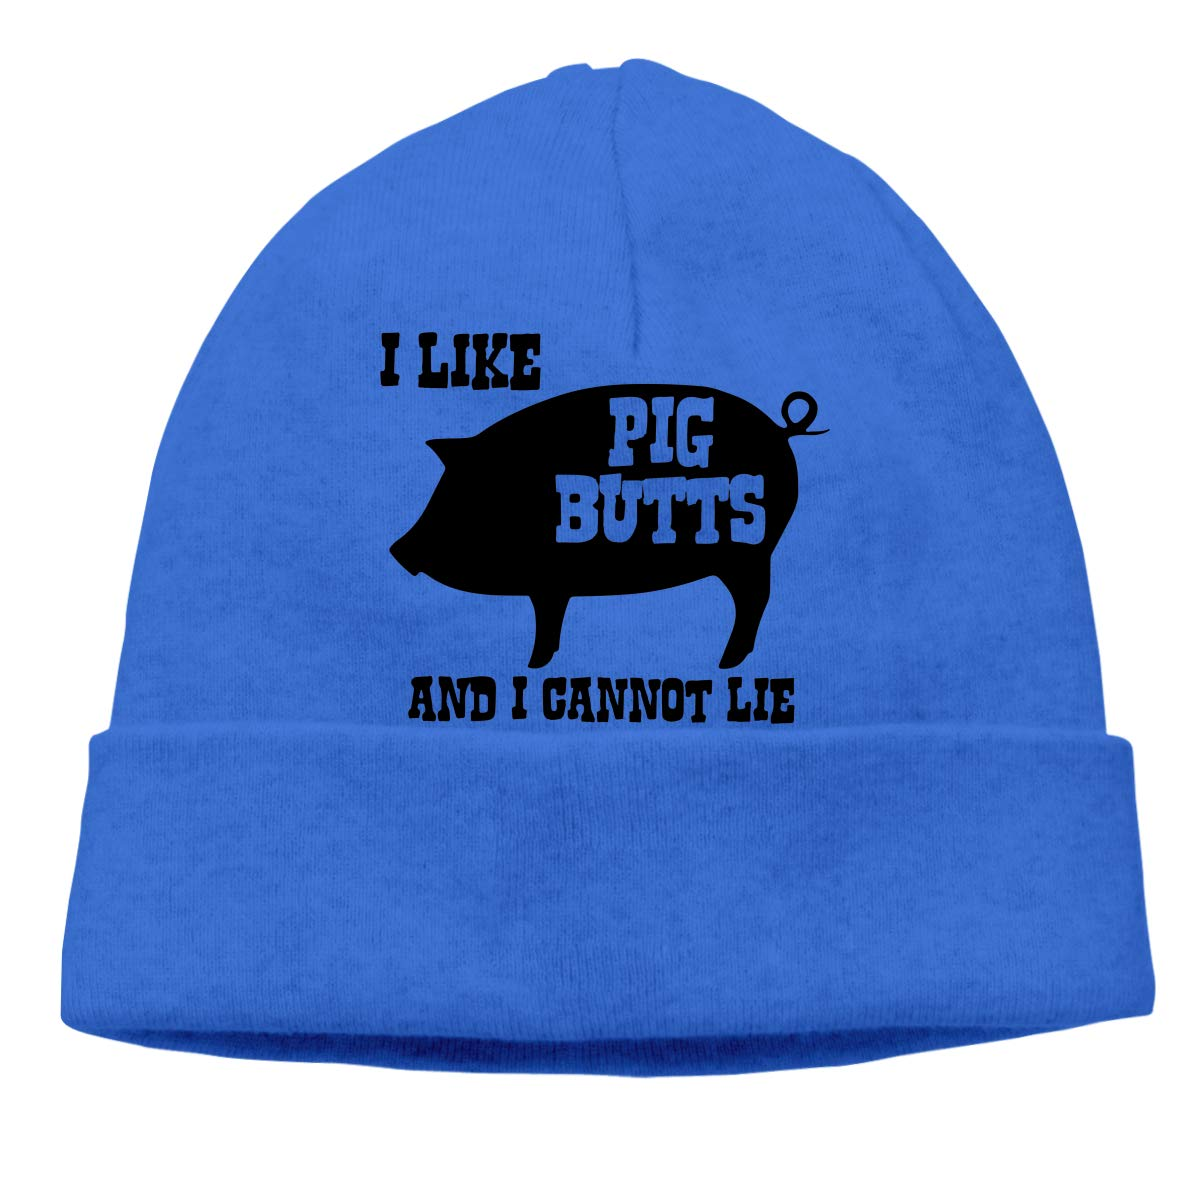 Mens and Womens I Like Pig Butts and I Cannot Lie Knitted Hat Cotton Skull Cap